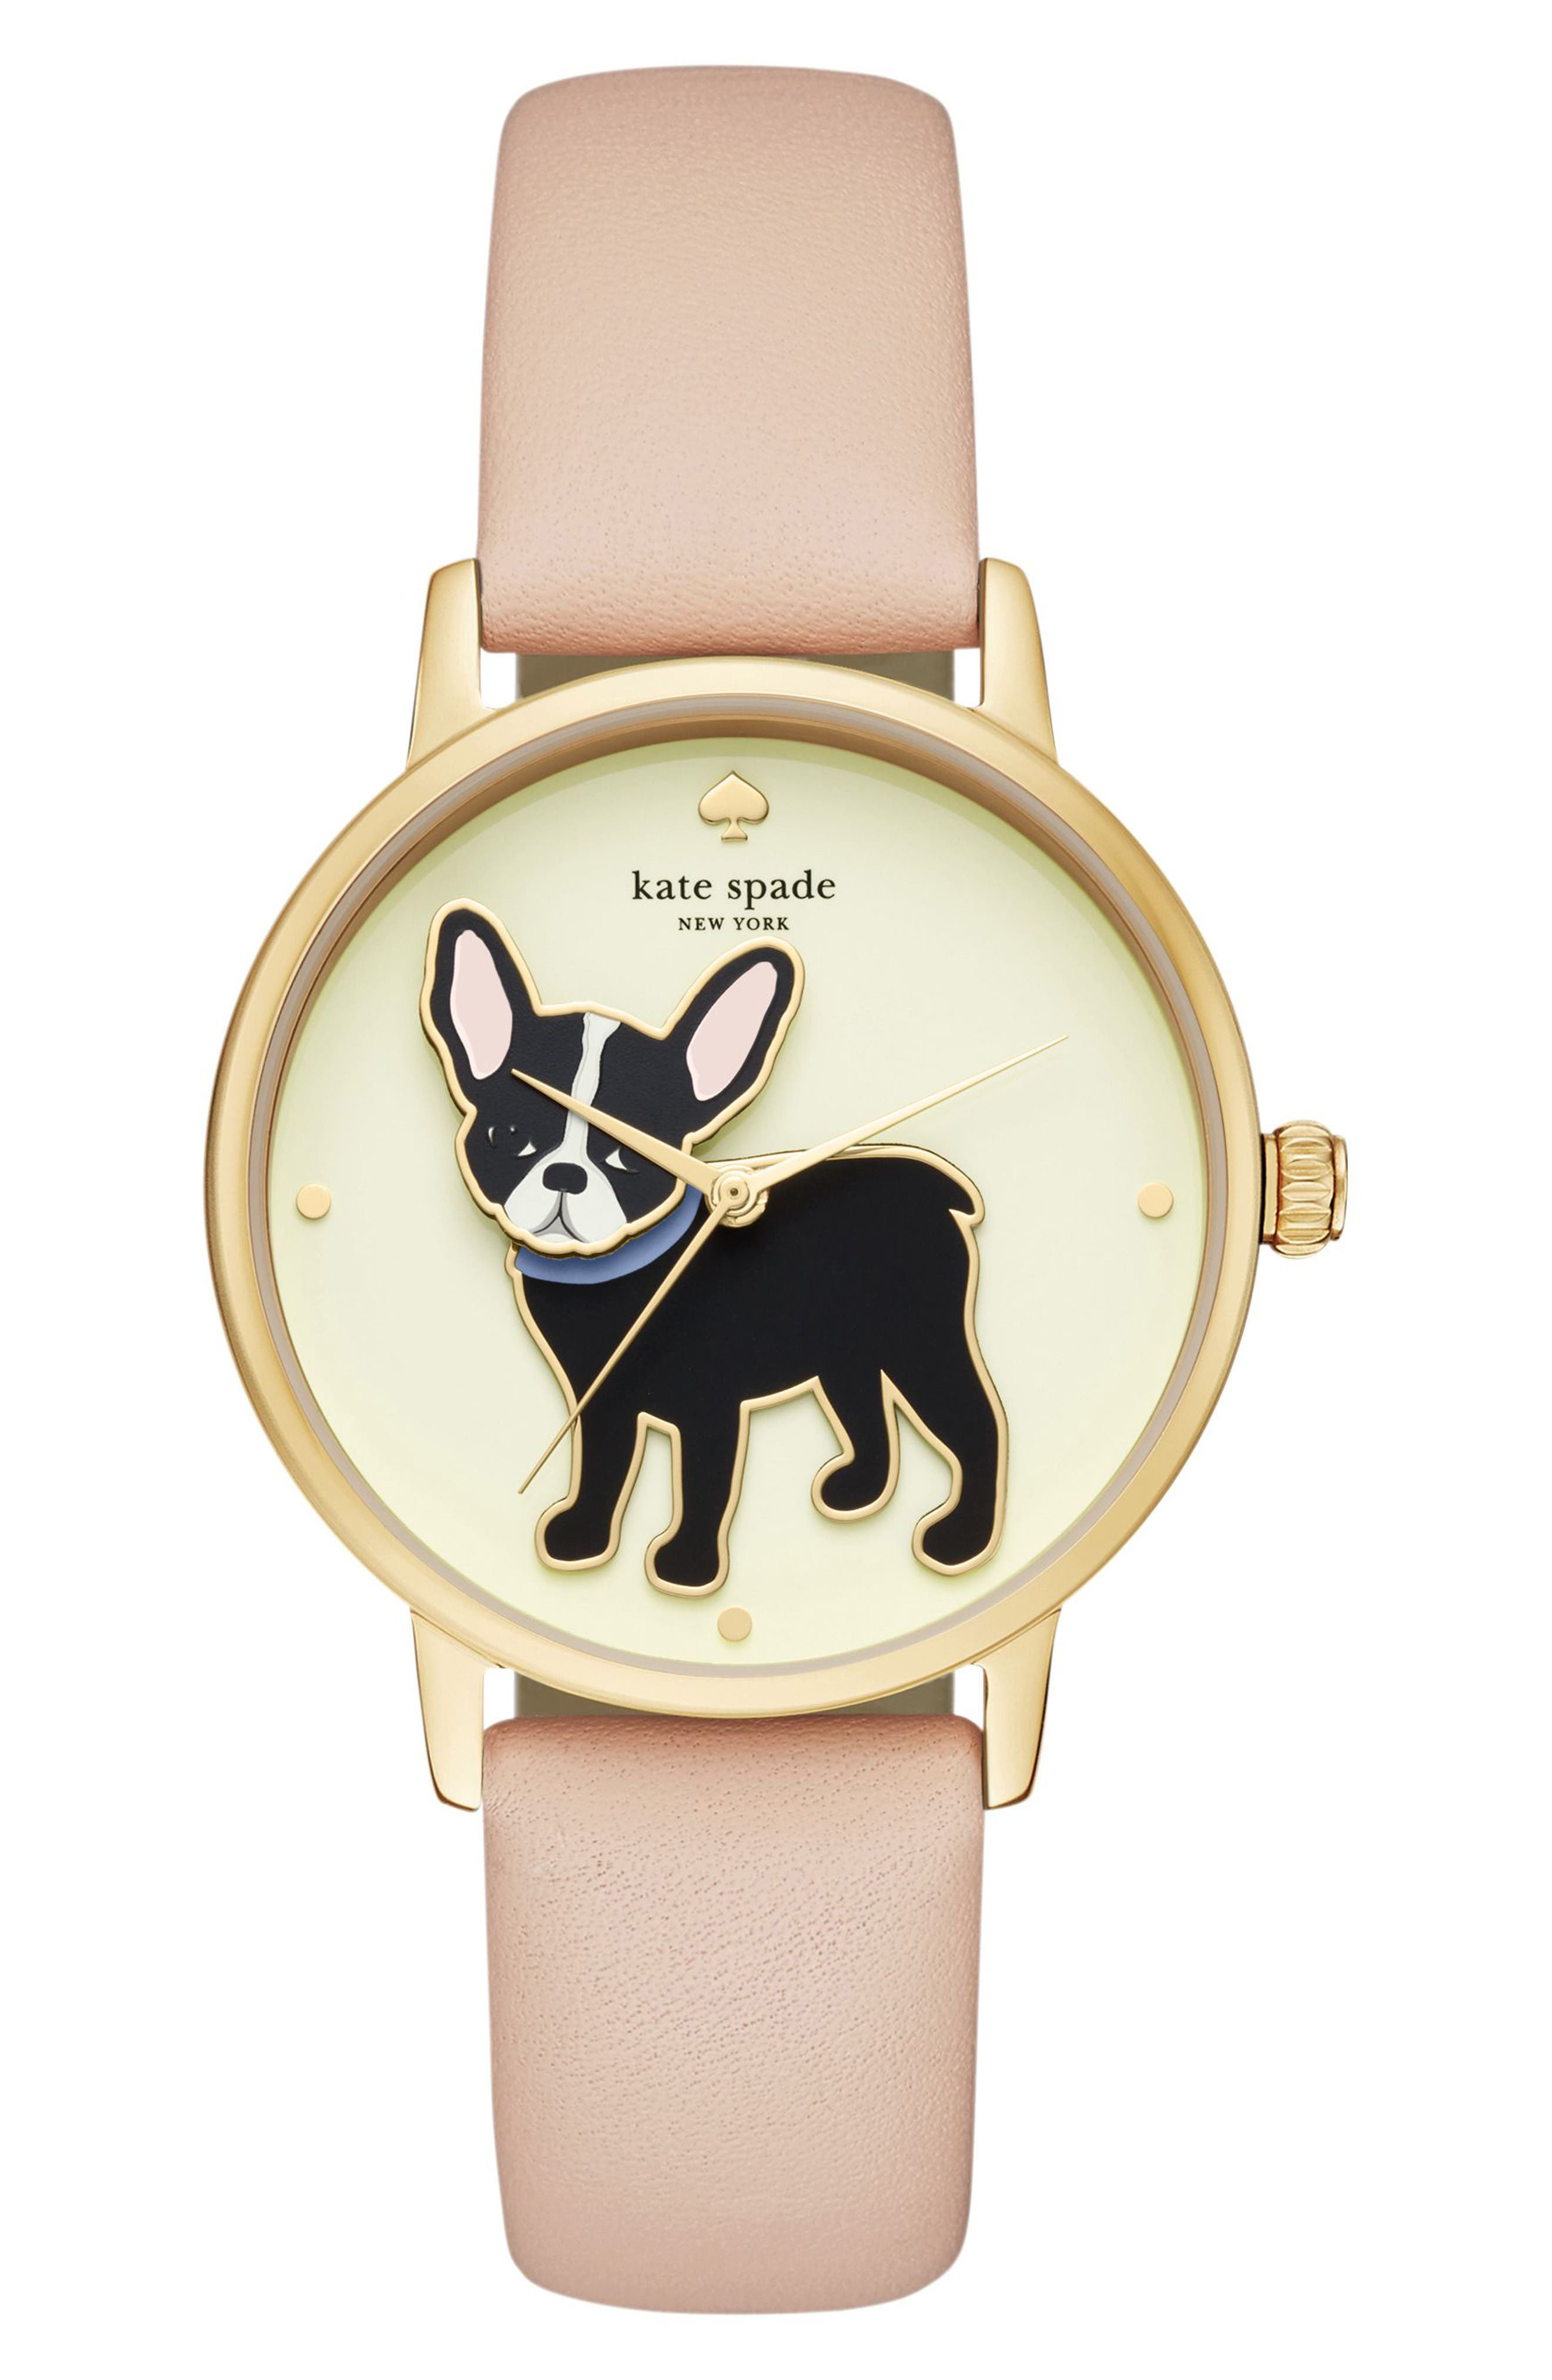 grand metro antoine leather strap watch, 38mm,                         Main,                         color, Nude/ Cream/ Gold